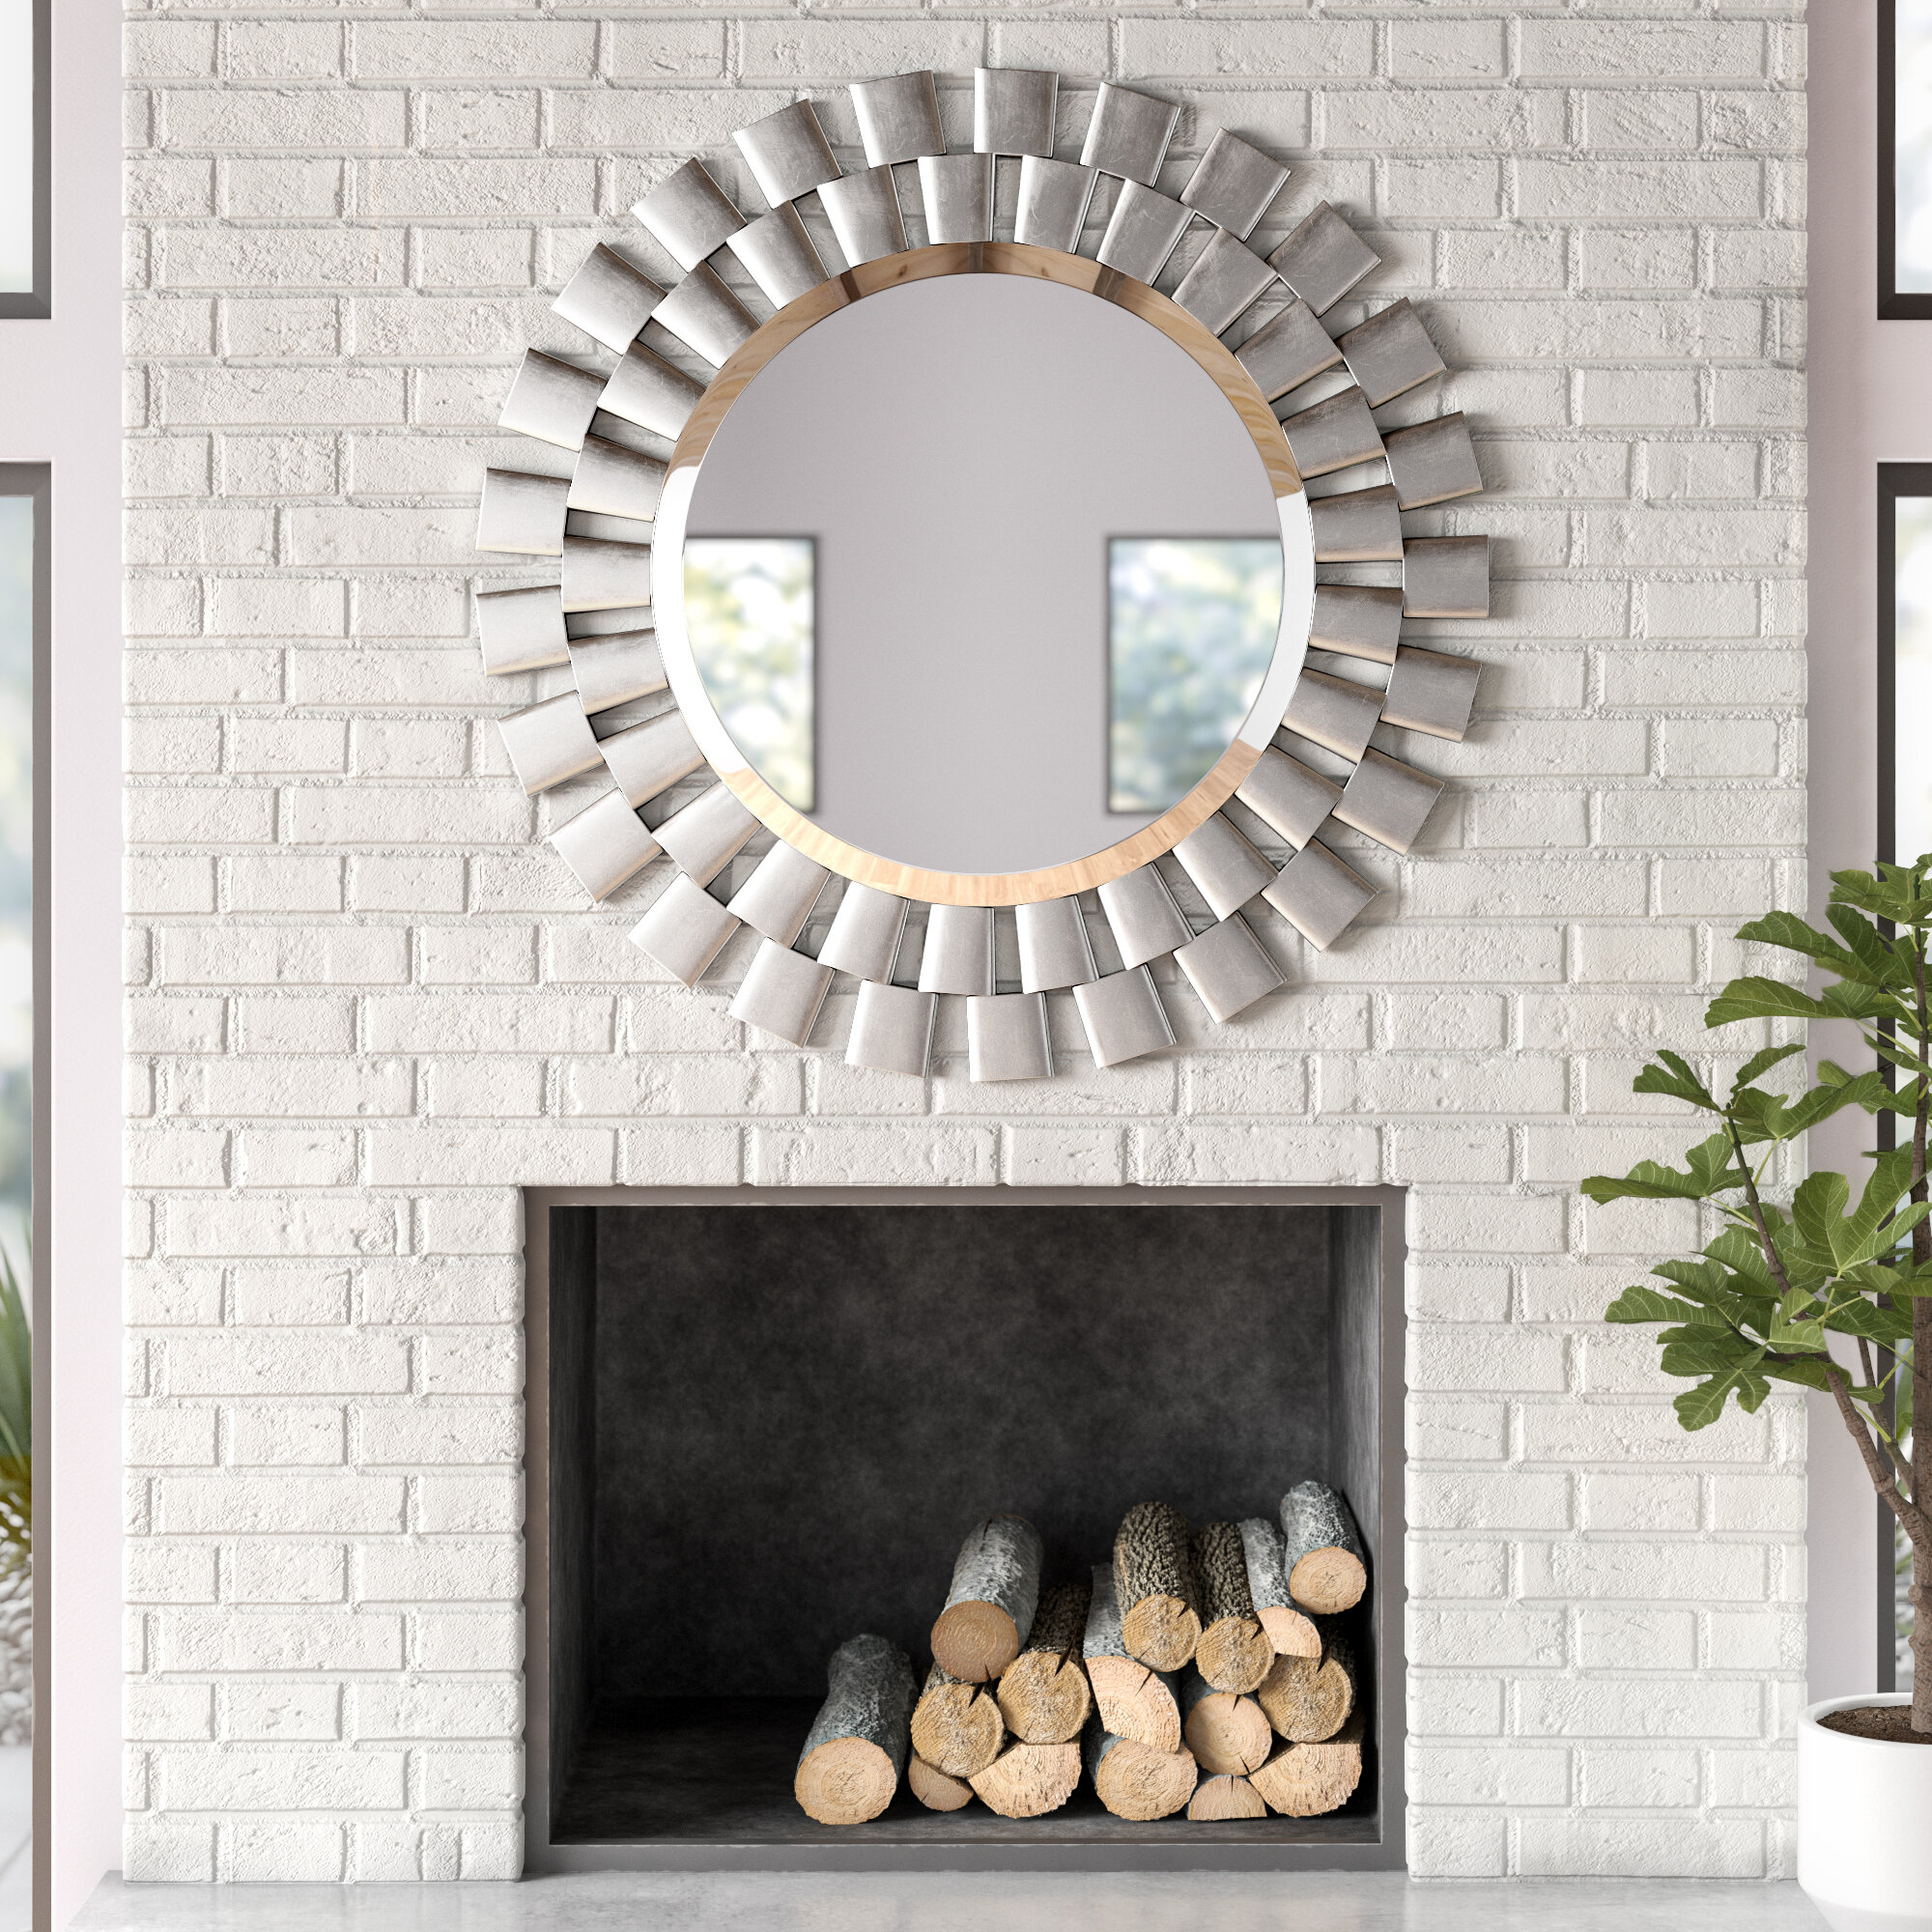 Glam Beveled Accent Mirror Regarding Glam Beveled Accent Mirrors (View 9 of 30)